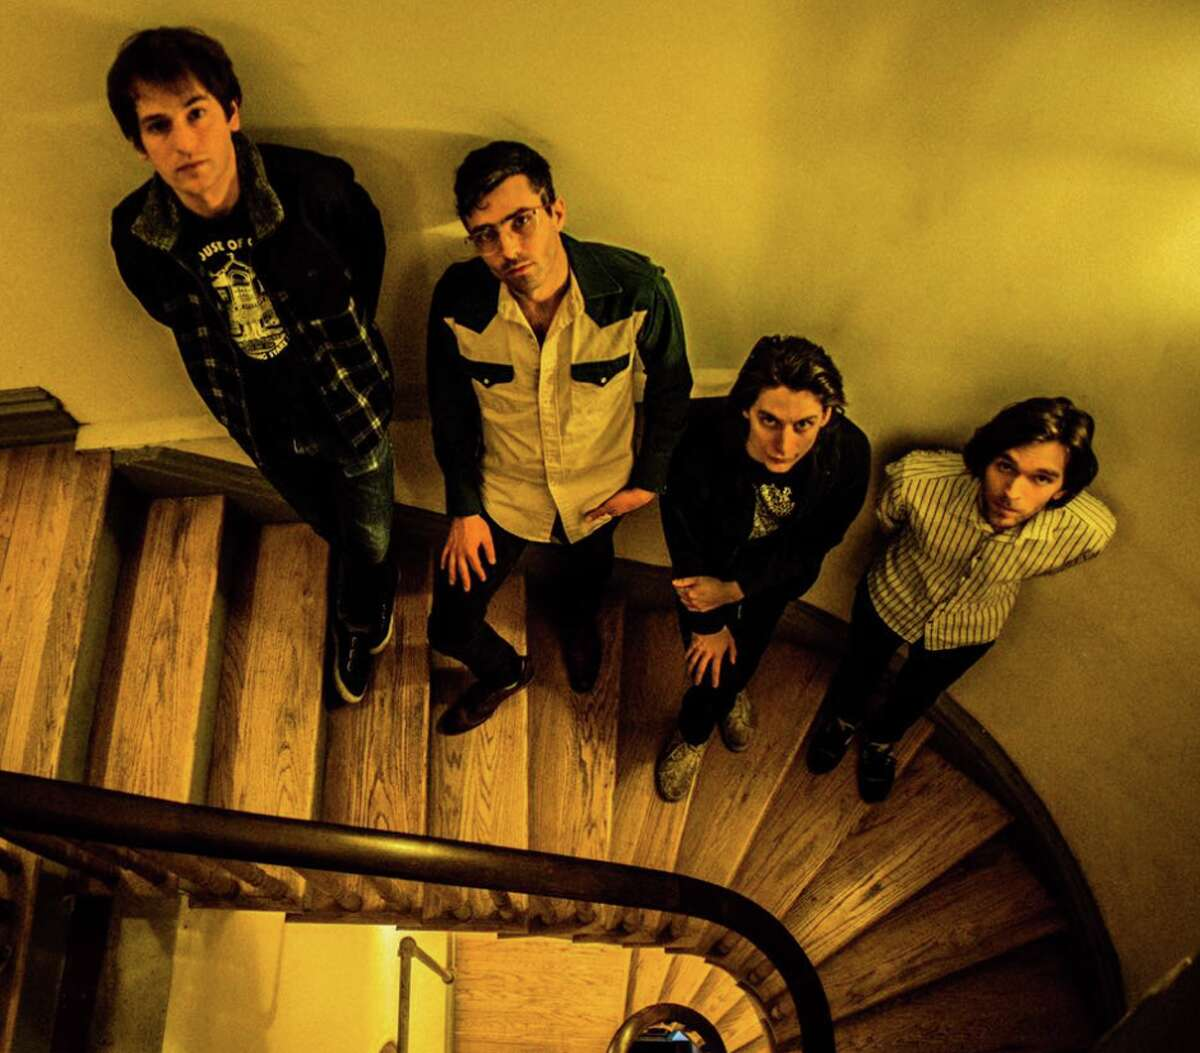 Brooklyn band Maybird with opening bands Cannon the Brave and The Sun Parade. When: Friday, May 26, 9 PM.Where: The Hollow Bar + Kitchen, 79 North Pearl Street, Albany.For more information and tickets, visit the website.